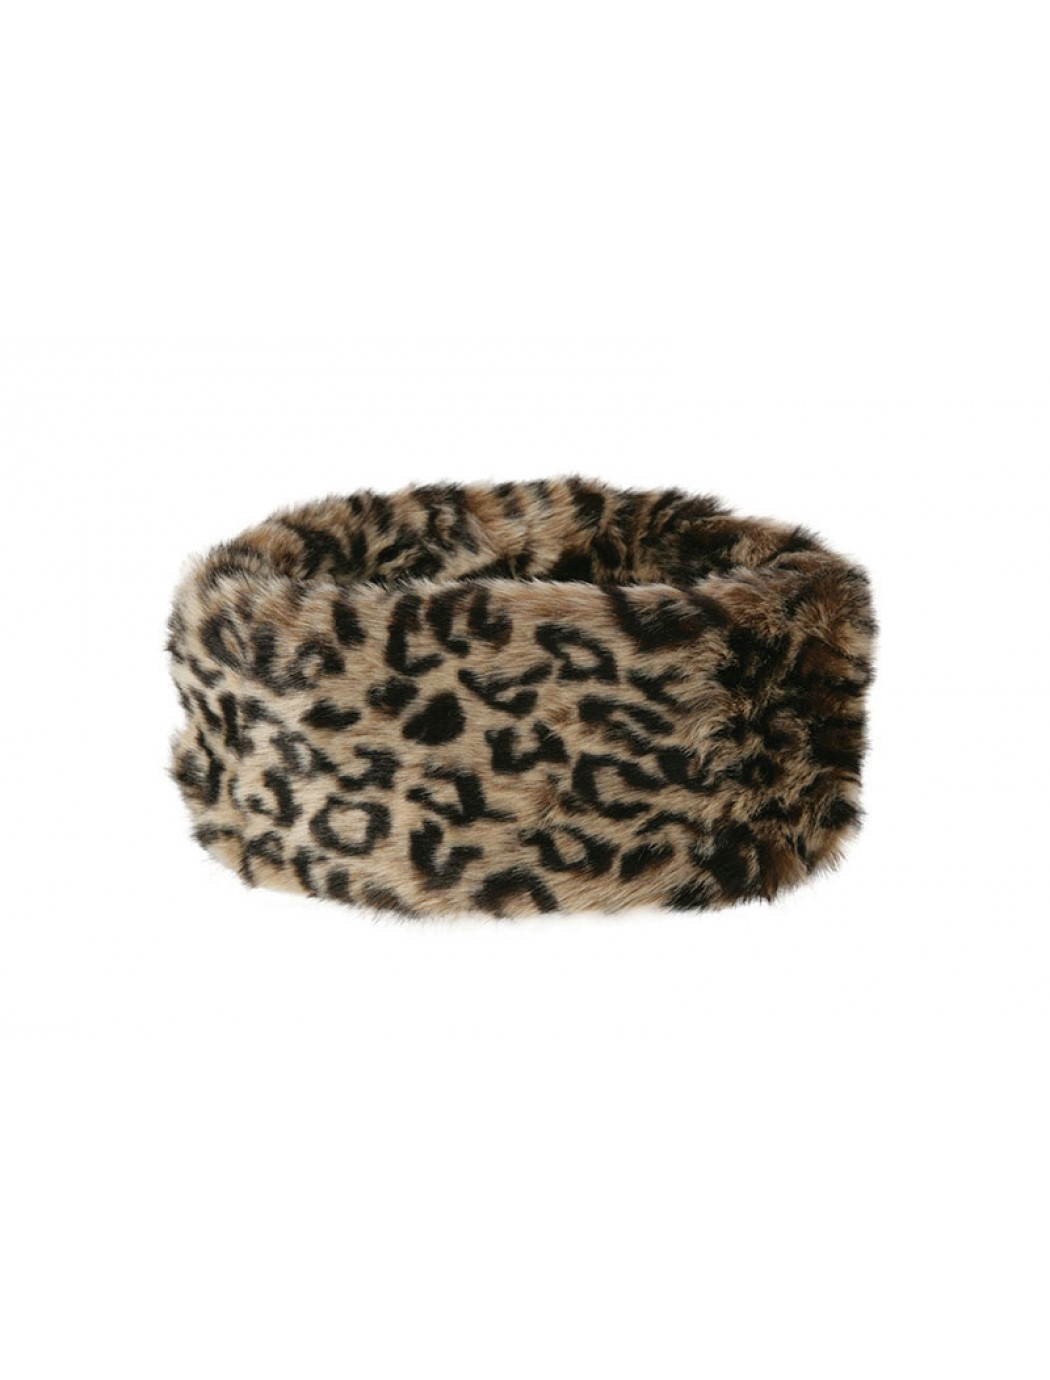 headband-socks-headwear-scaves-leopard